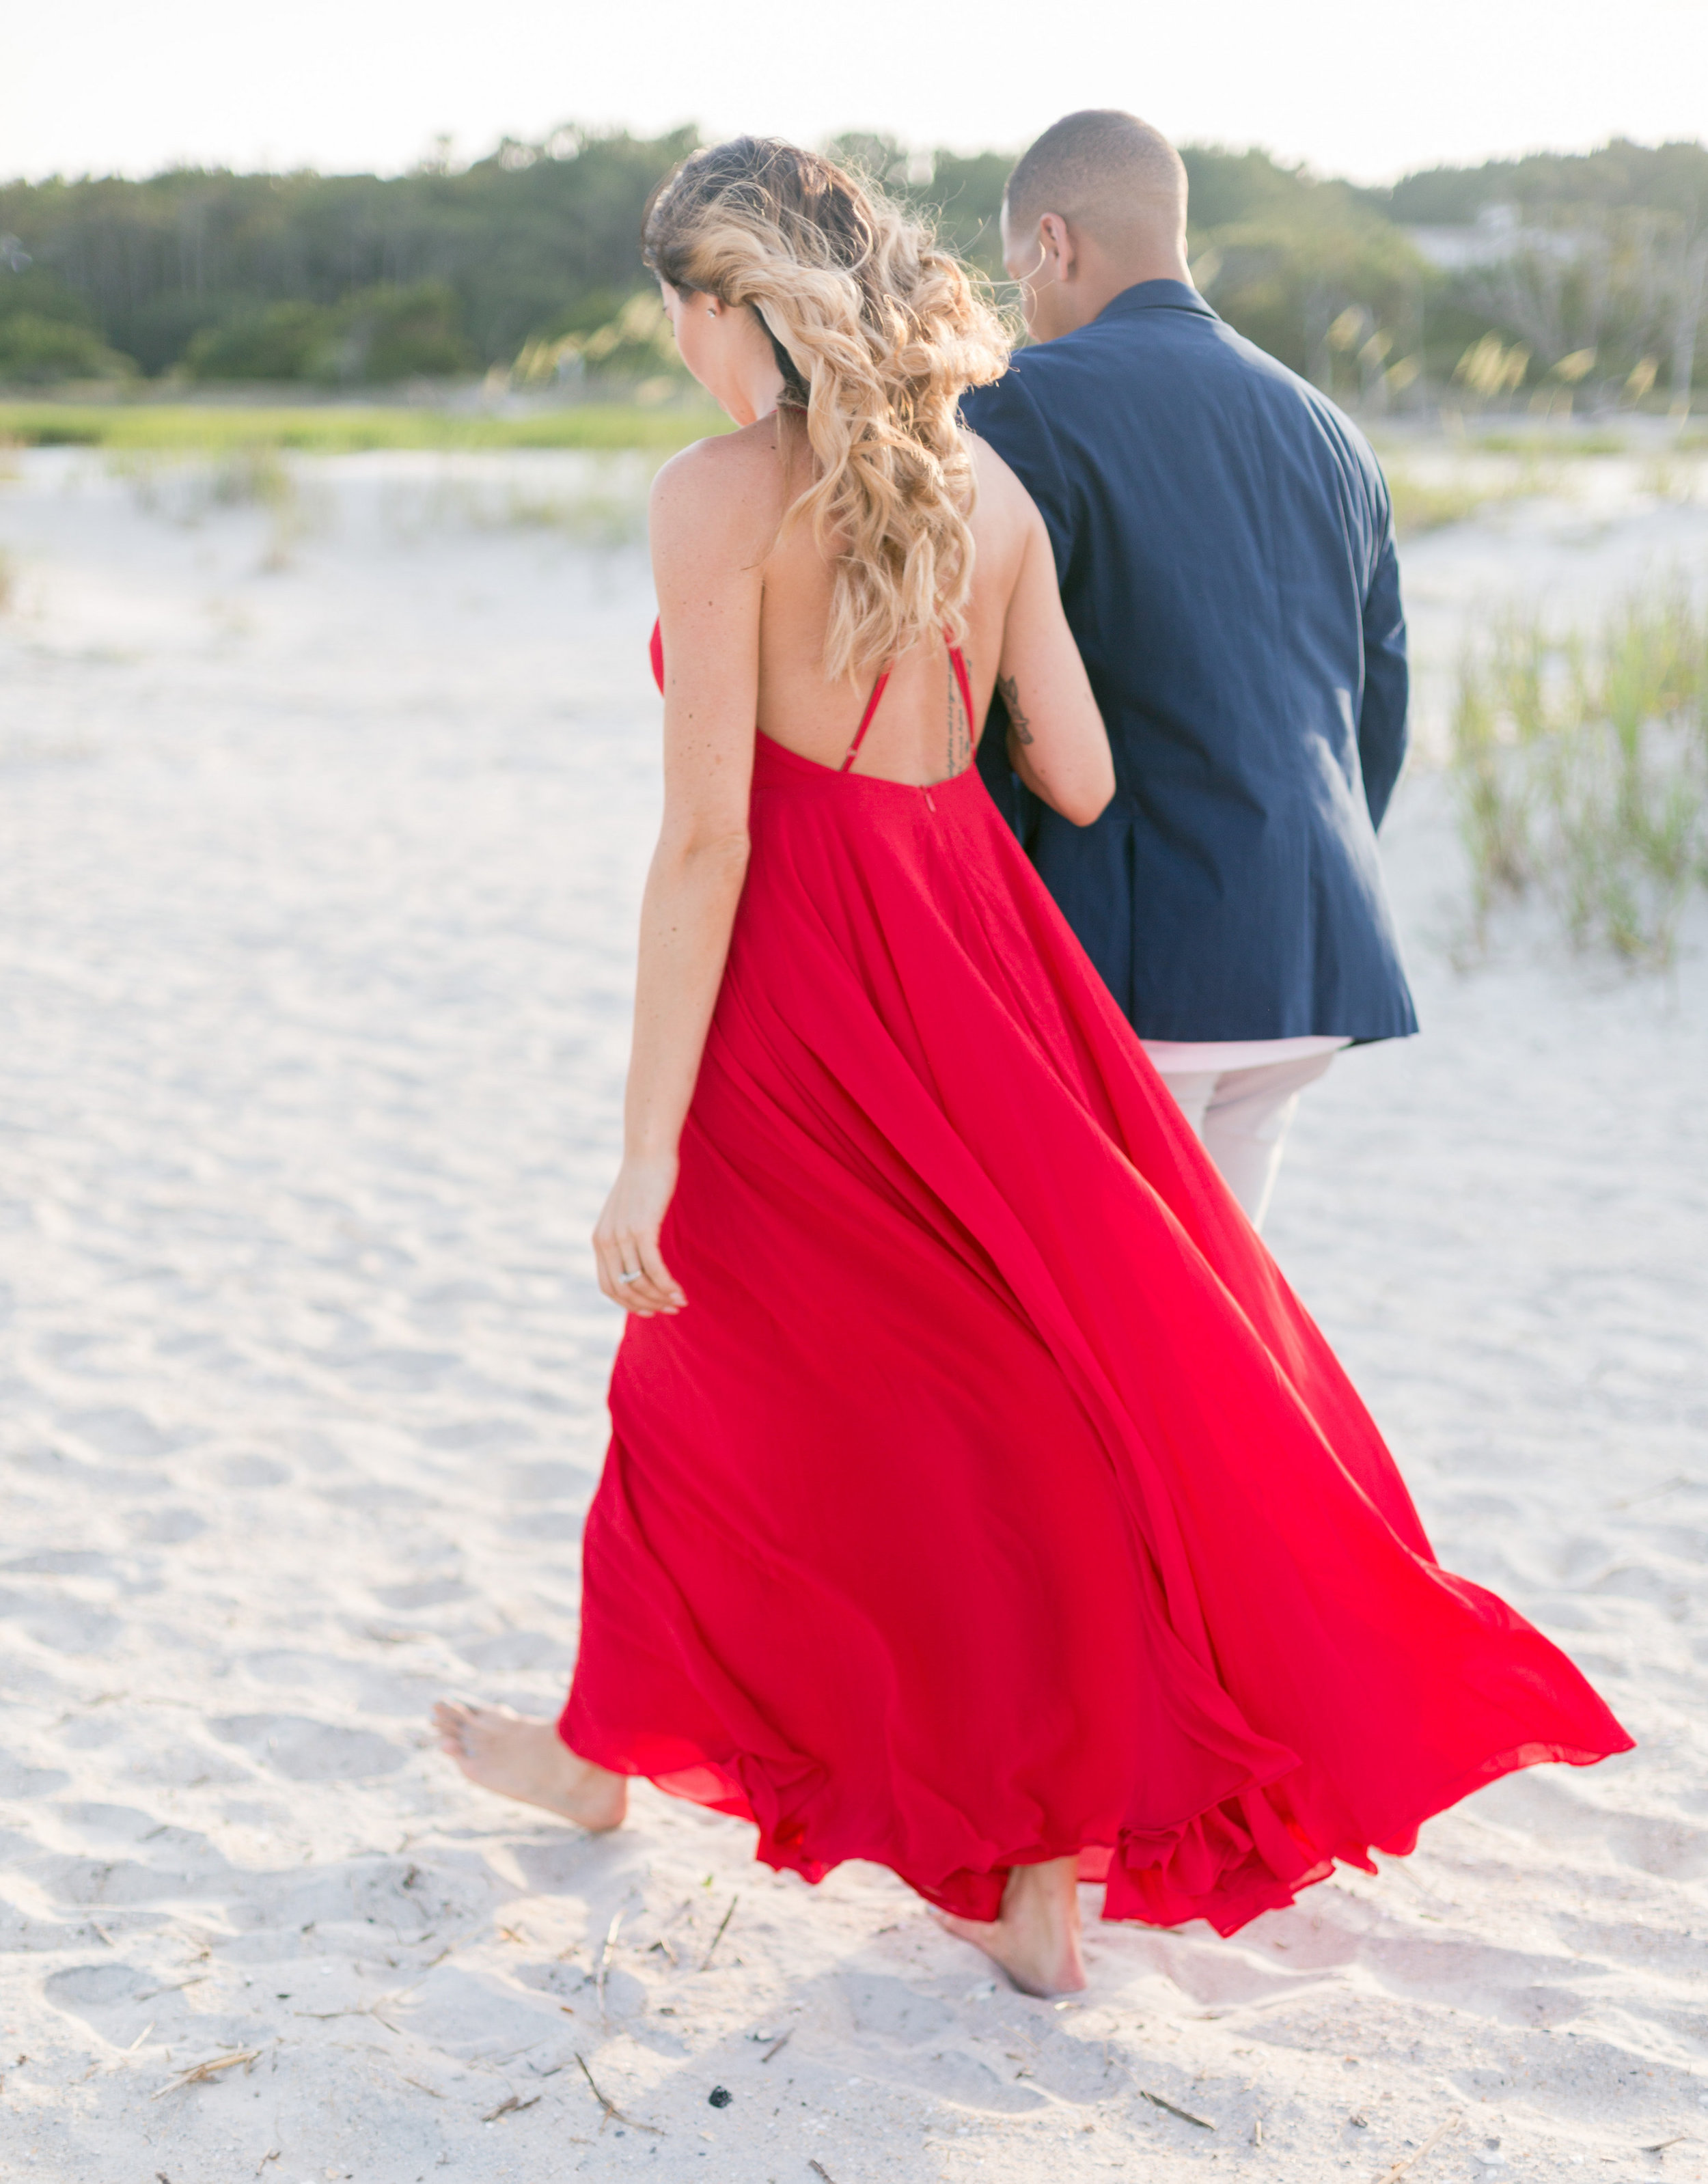 Lowcountry Engagement Session in Pawleys Island, SC